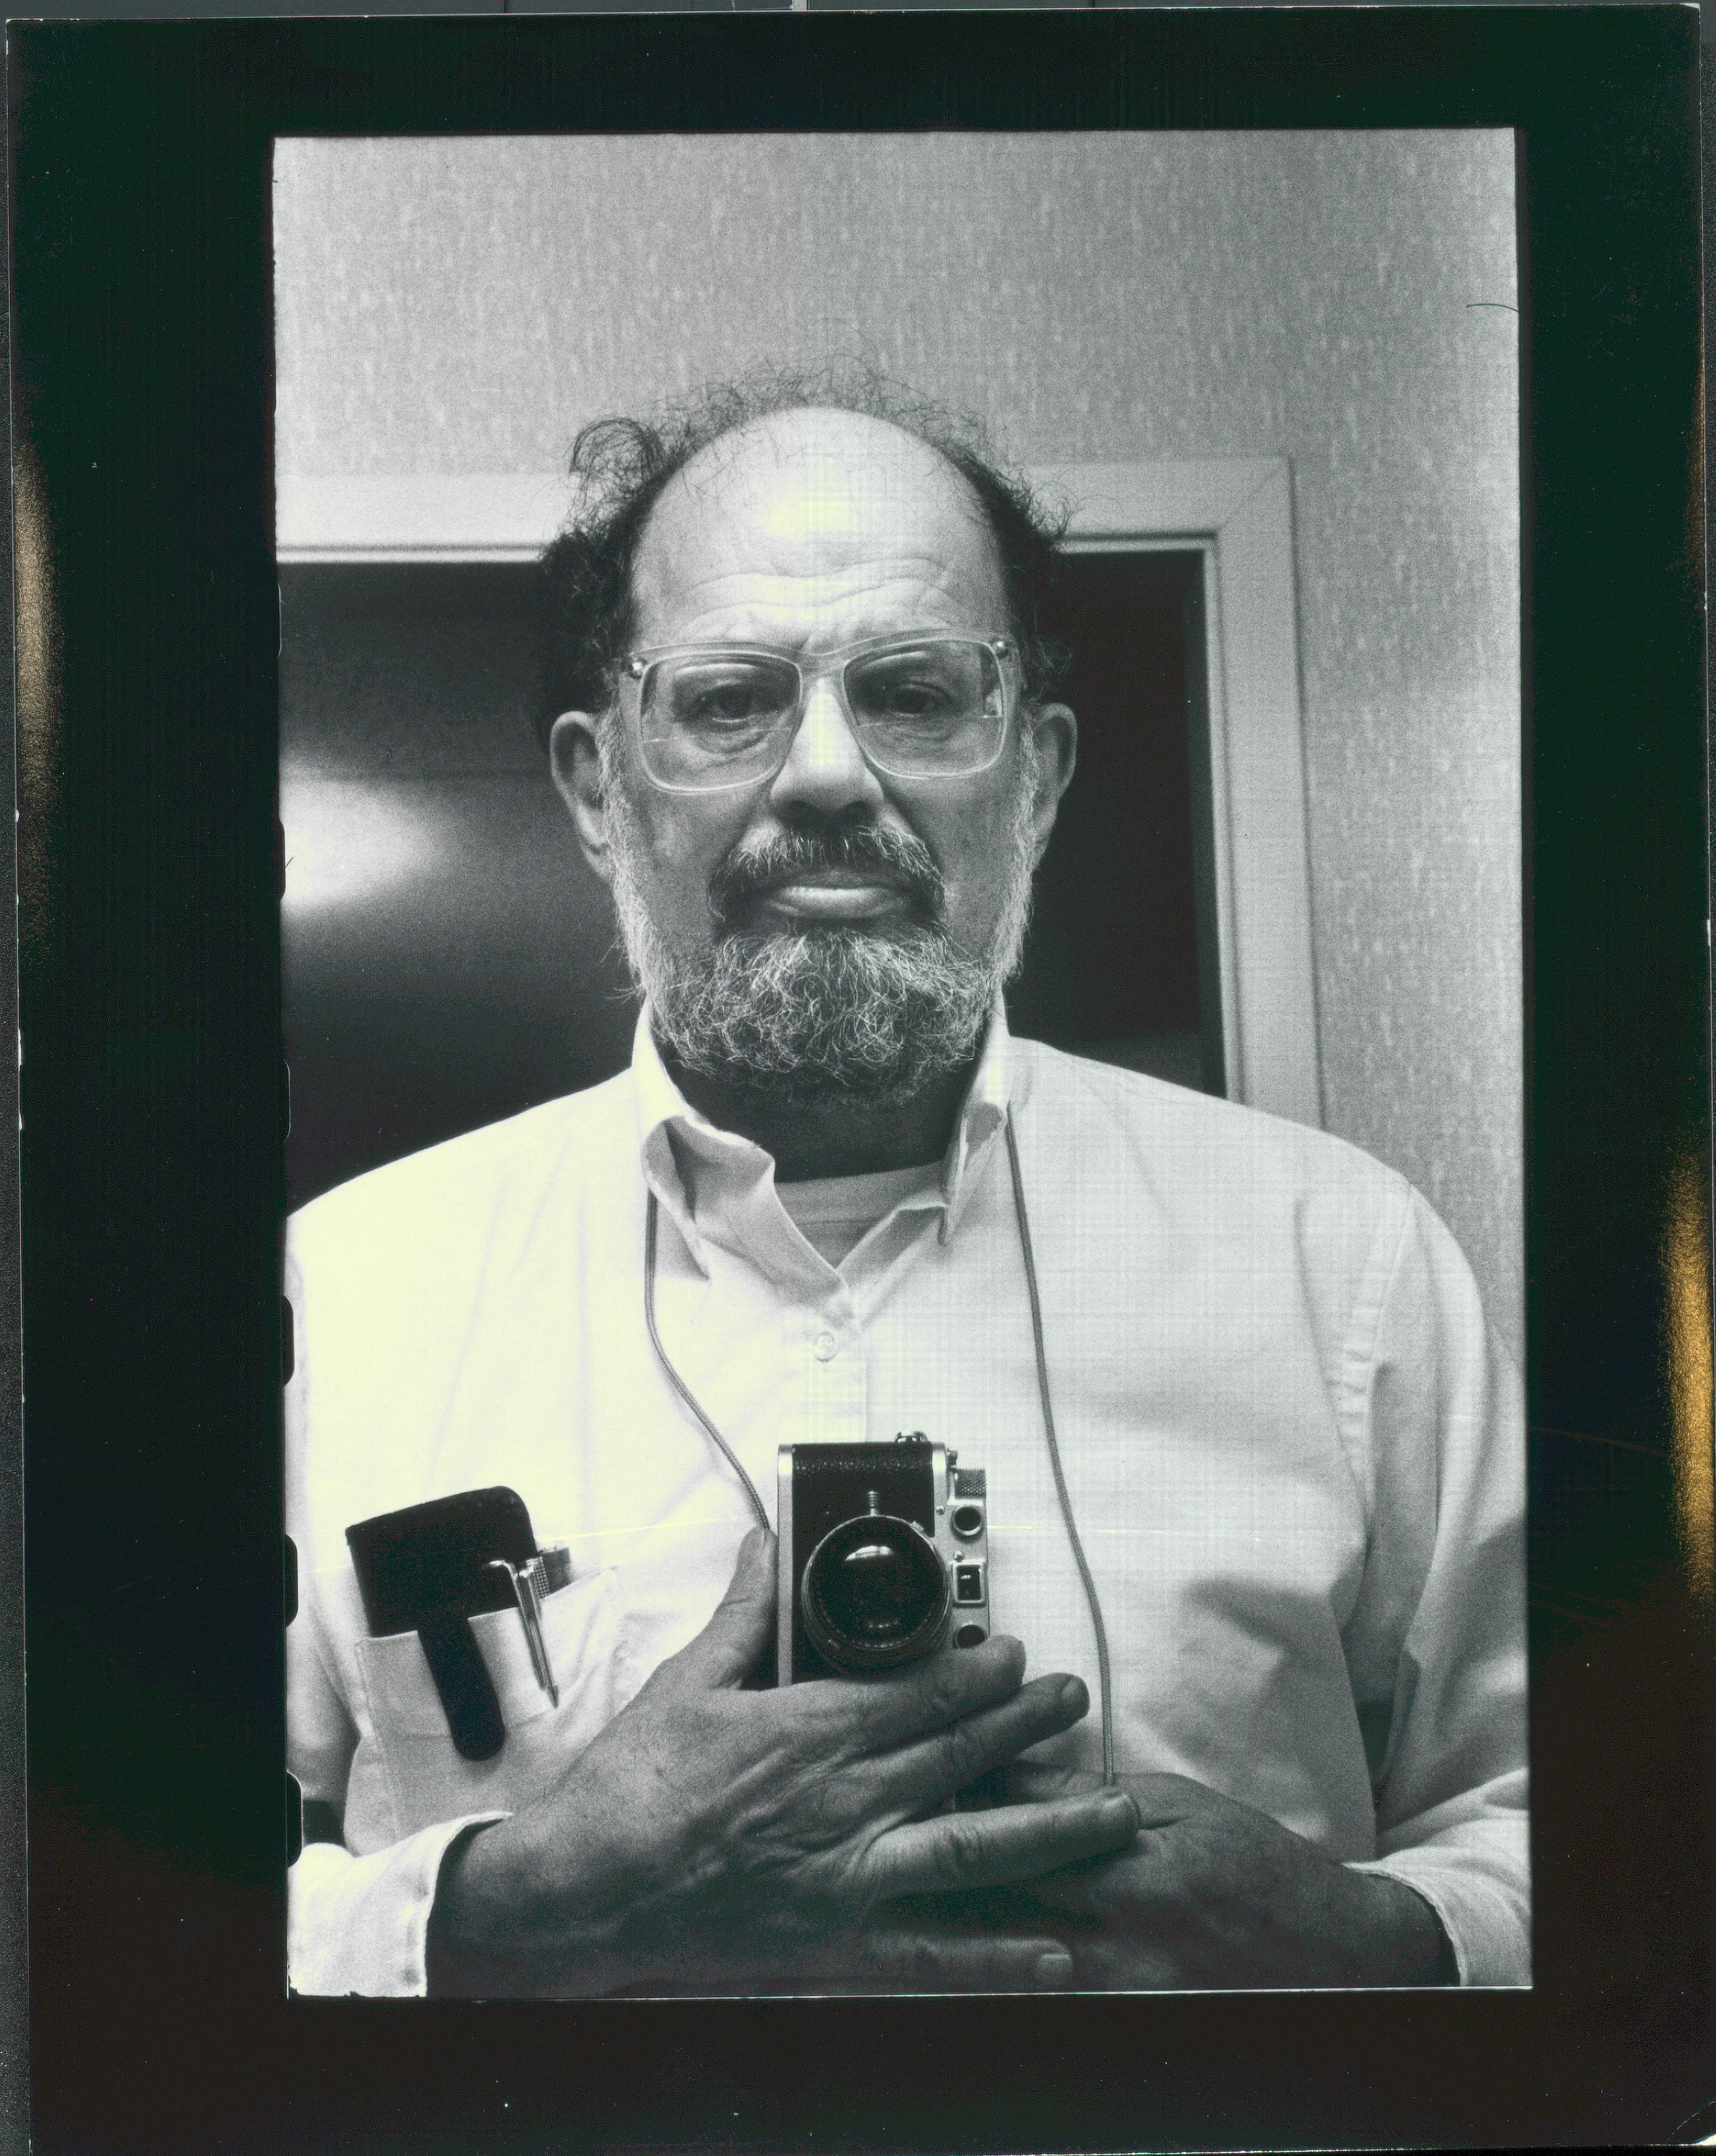 allen ginsberg It's more than half a century since allen ginsberg's poem howl landed like a bombshell in the staid world of 1950s america but what was the poet really like friends and colleagues remember him.